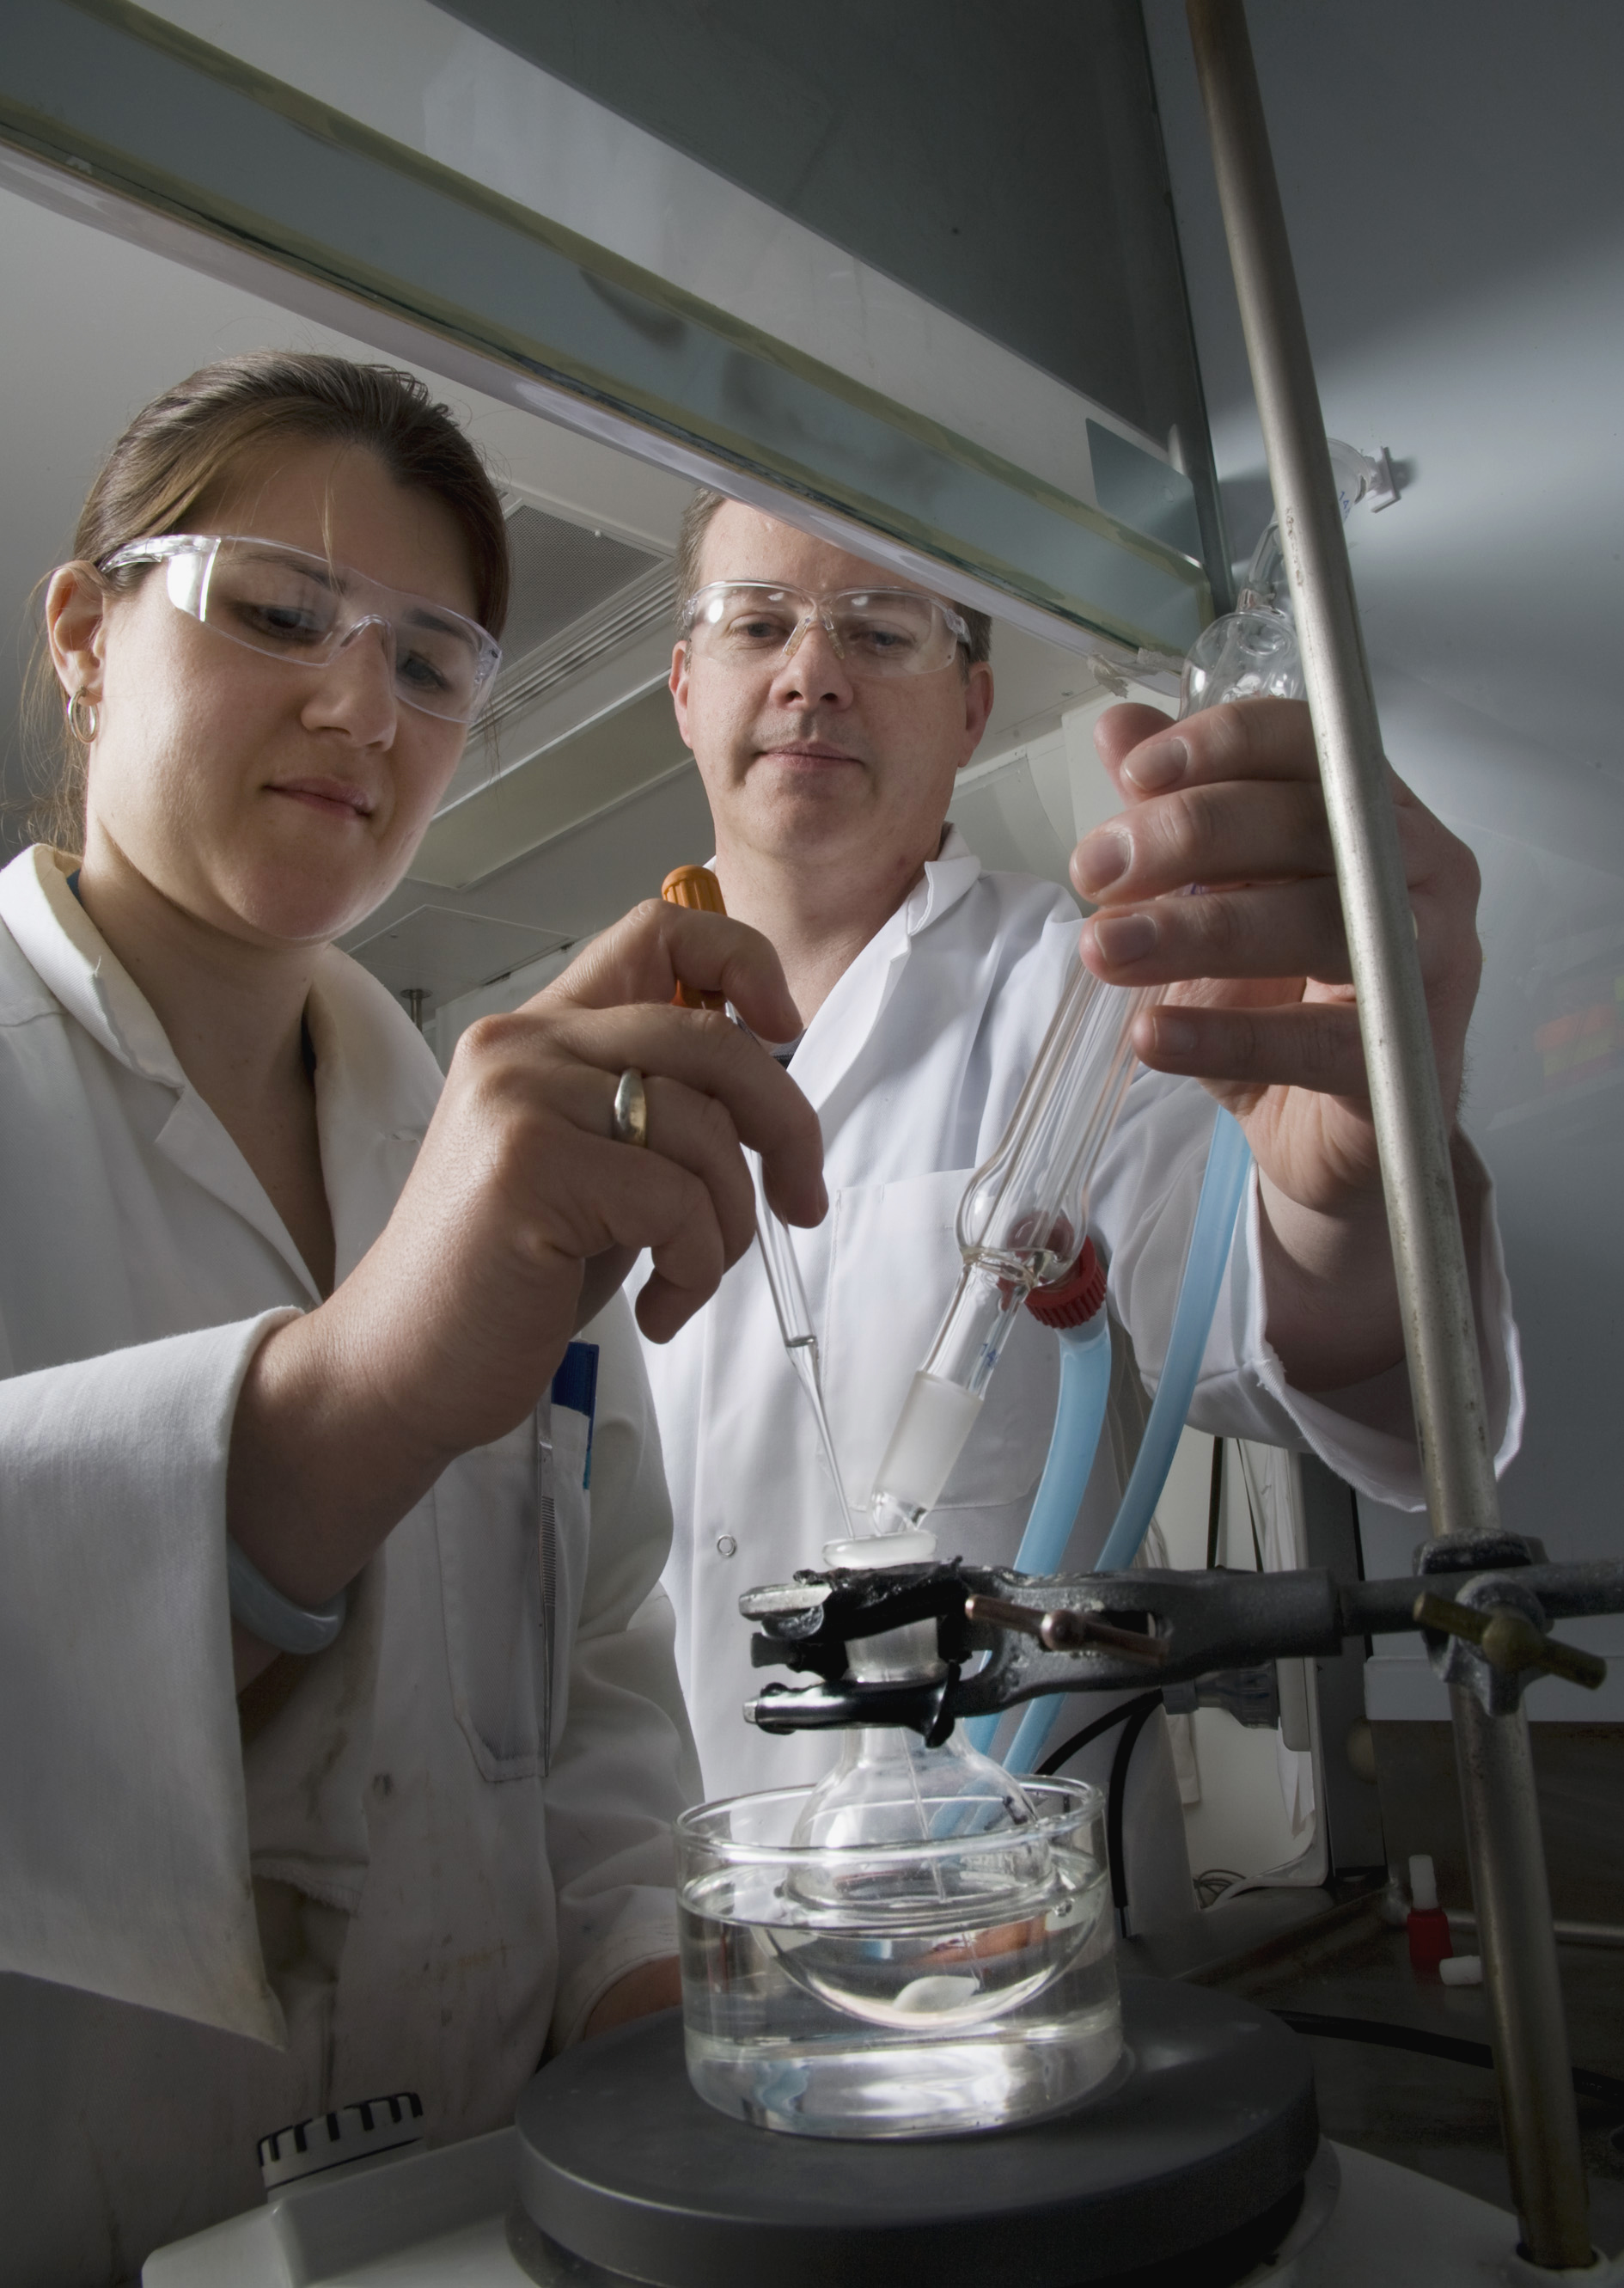 DSTO researchers are using mass spectrometry, the science of weighing molecules and their fragments to identify the elements and the chemical structure of molecules in a chemical sample, to investigate the structure and stability of molecular species and to reveal the way molecules interact. Potential of mass spectrometry for Defence includes hazard management and identifying new and improved applications to analyse different chemical samples.